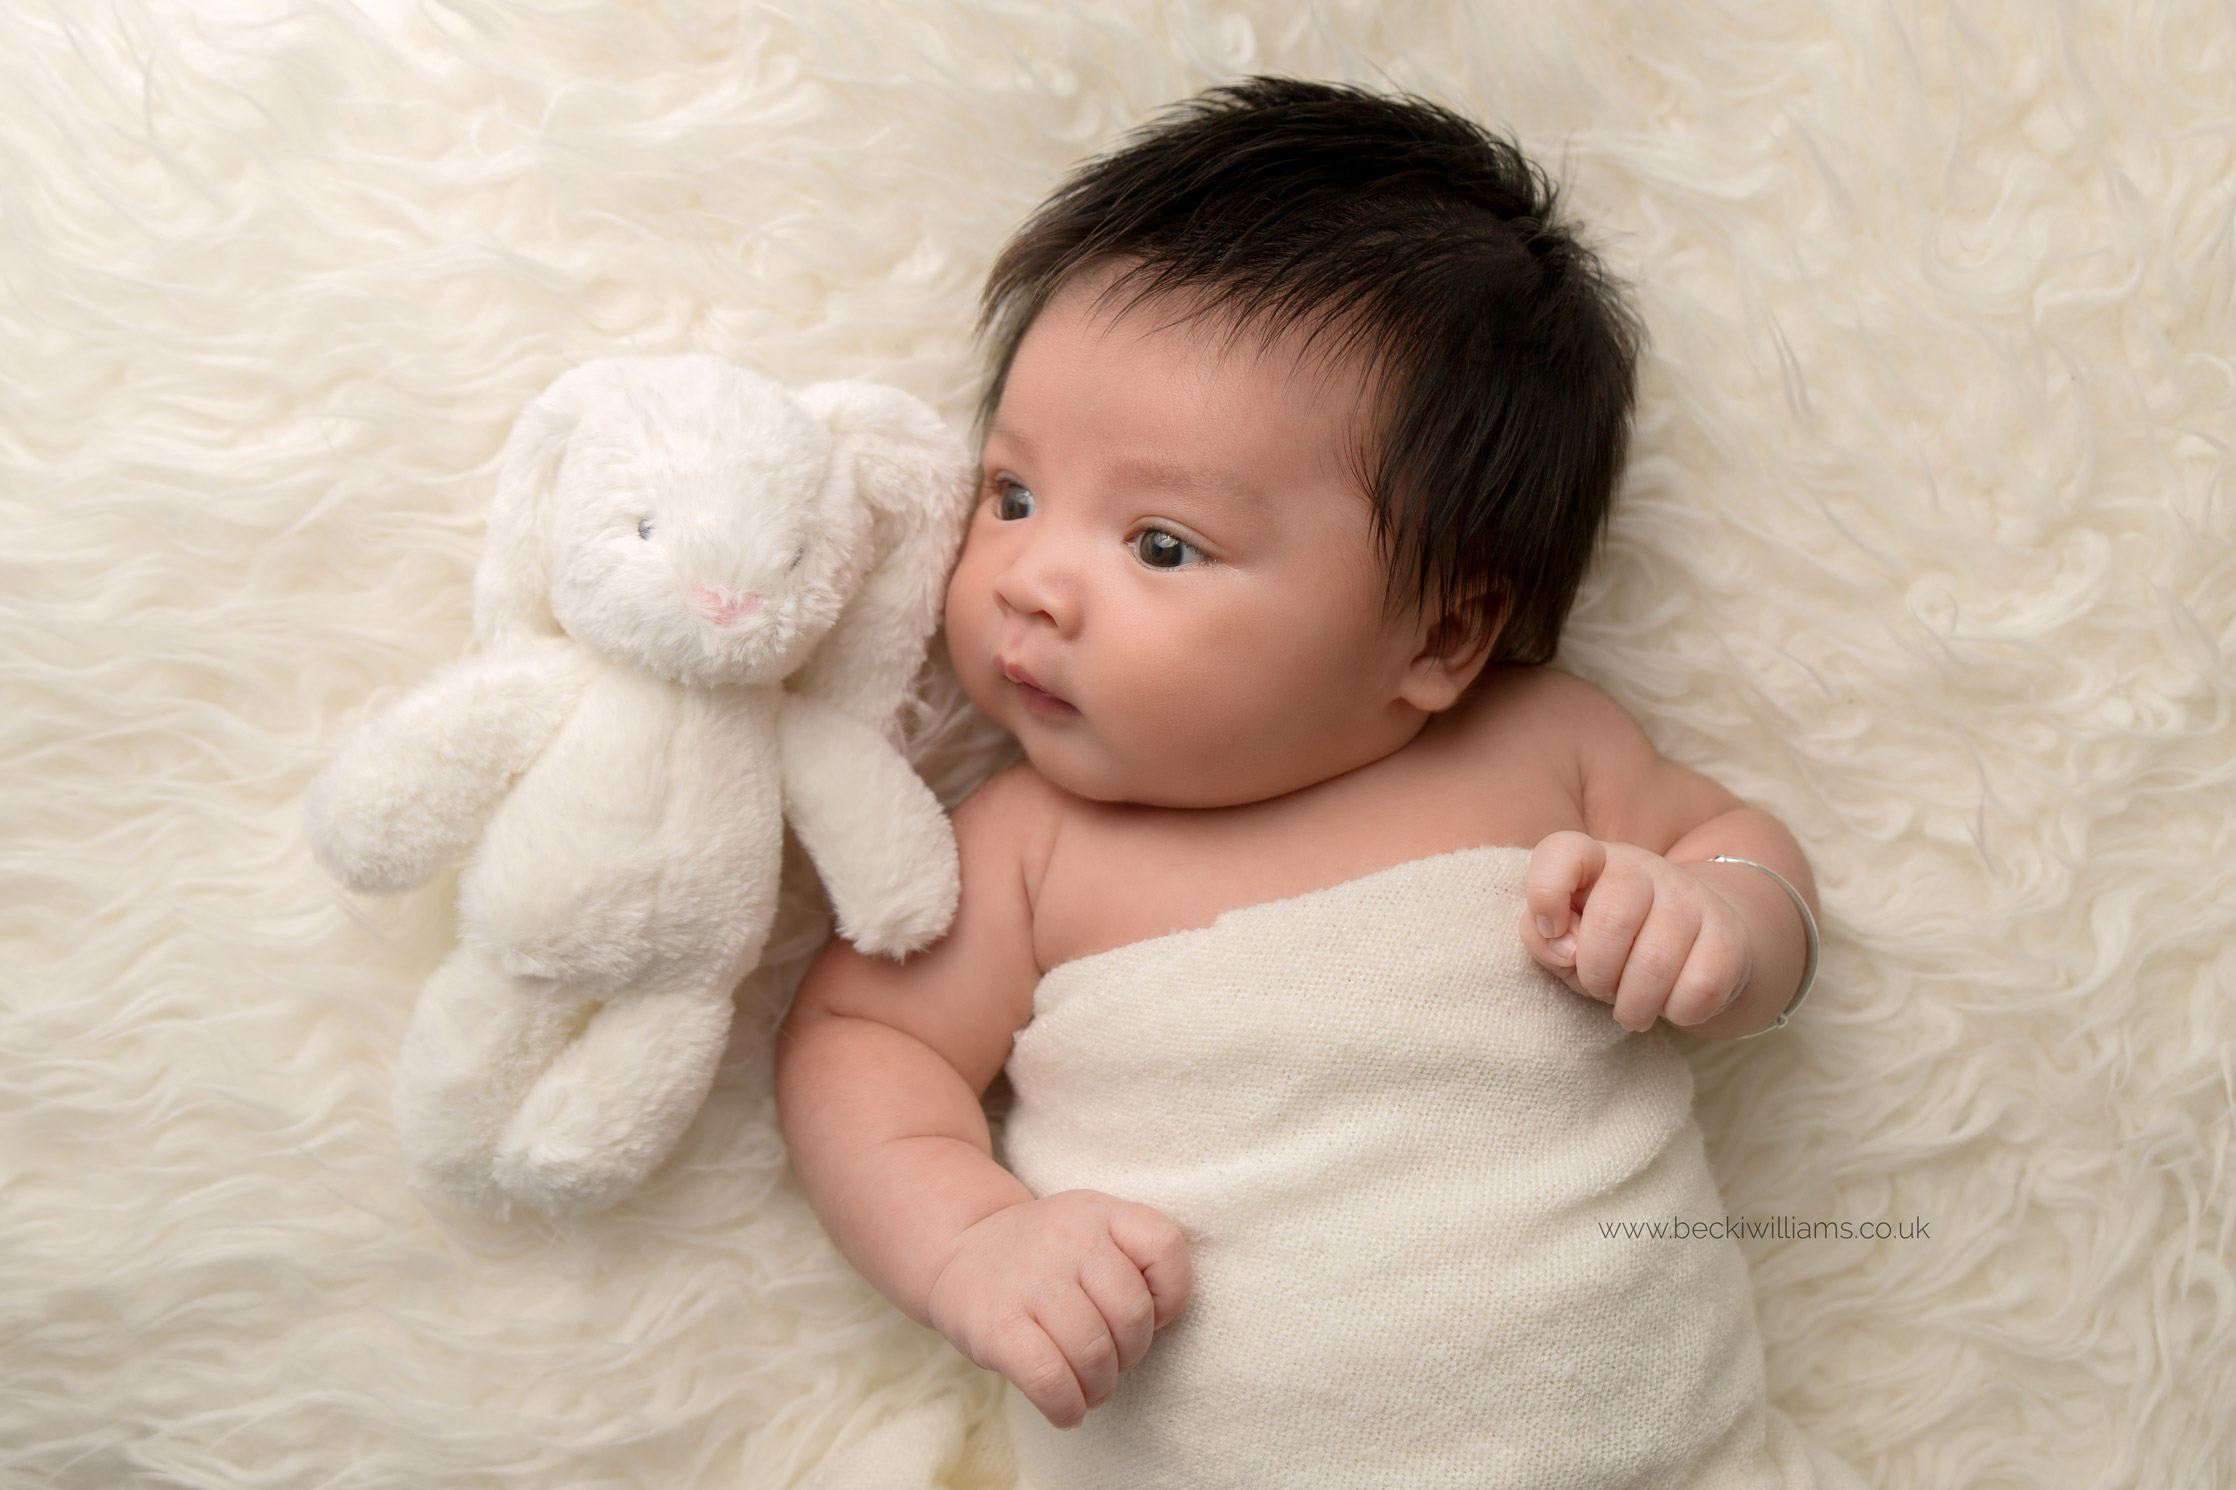 newborn-photography-in-hertfordshire-watford-studio-natural-awake-baby.jpg